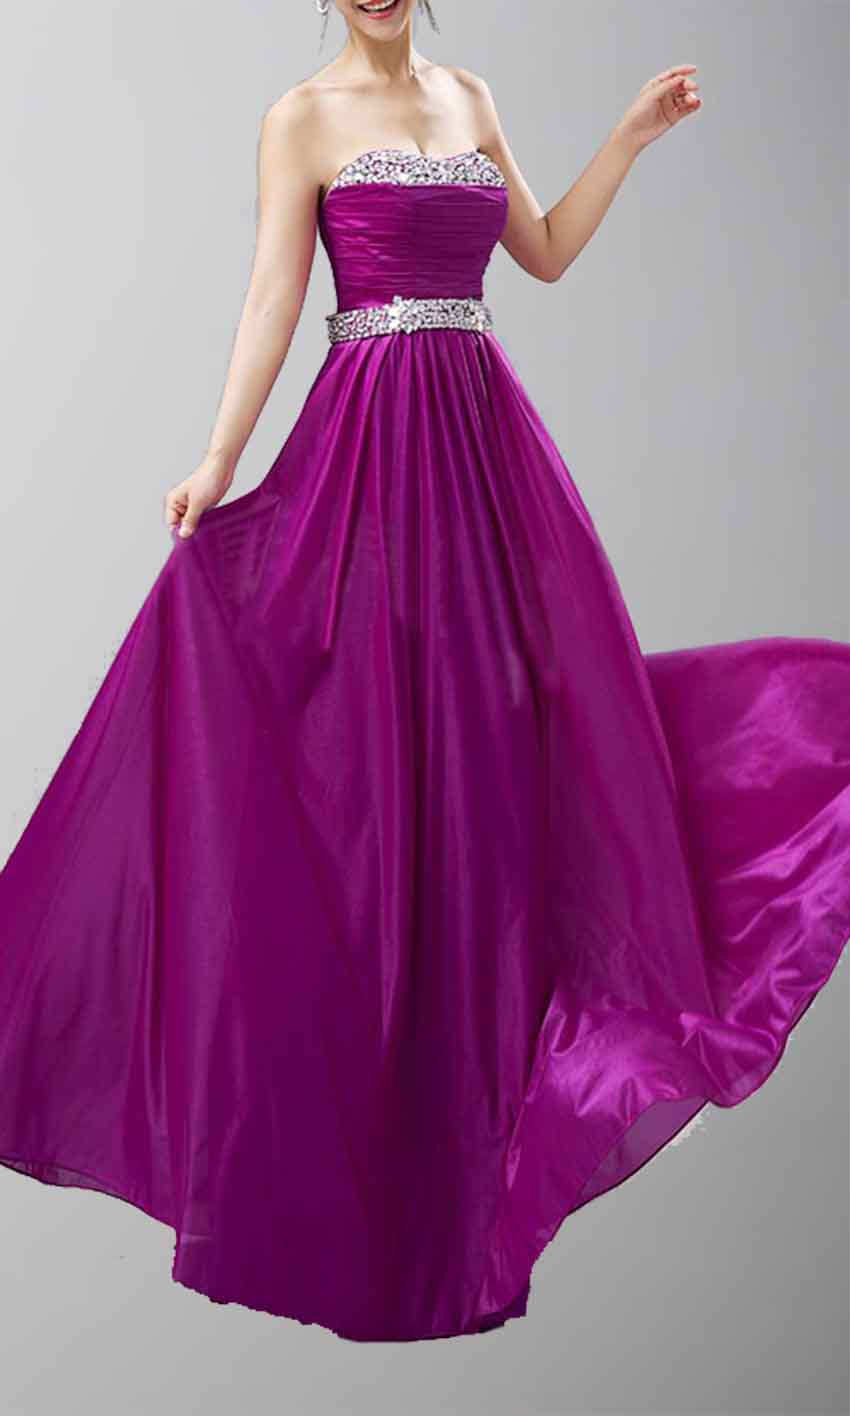 Gorgeous Strapless Sweetheart Long Chiffon Prom Dresses KSP153 [KSP153] - £97.00 : Cheap Prom Dresses Uk, Bridesmaid Dresses, 2014 Prom & Evening Dresses, Look for cheap elegant prom dresses 2014, cocktail gowns, or dresses for special occasions? kissprom.co.uk offers various bridesmaid dresses, evening dress, free shipping to UK etc.